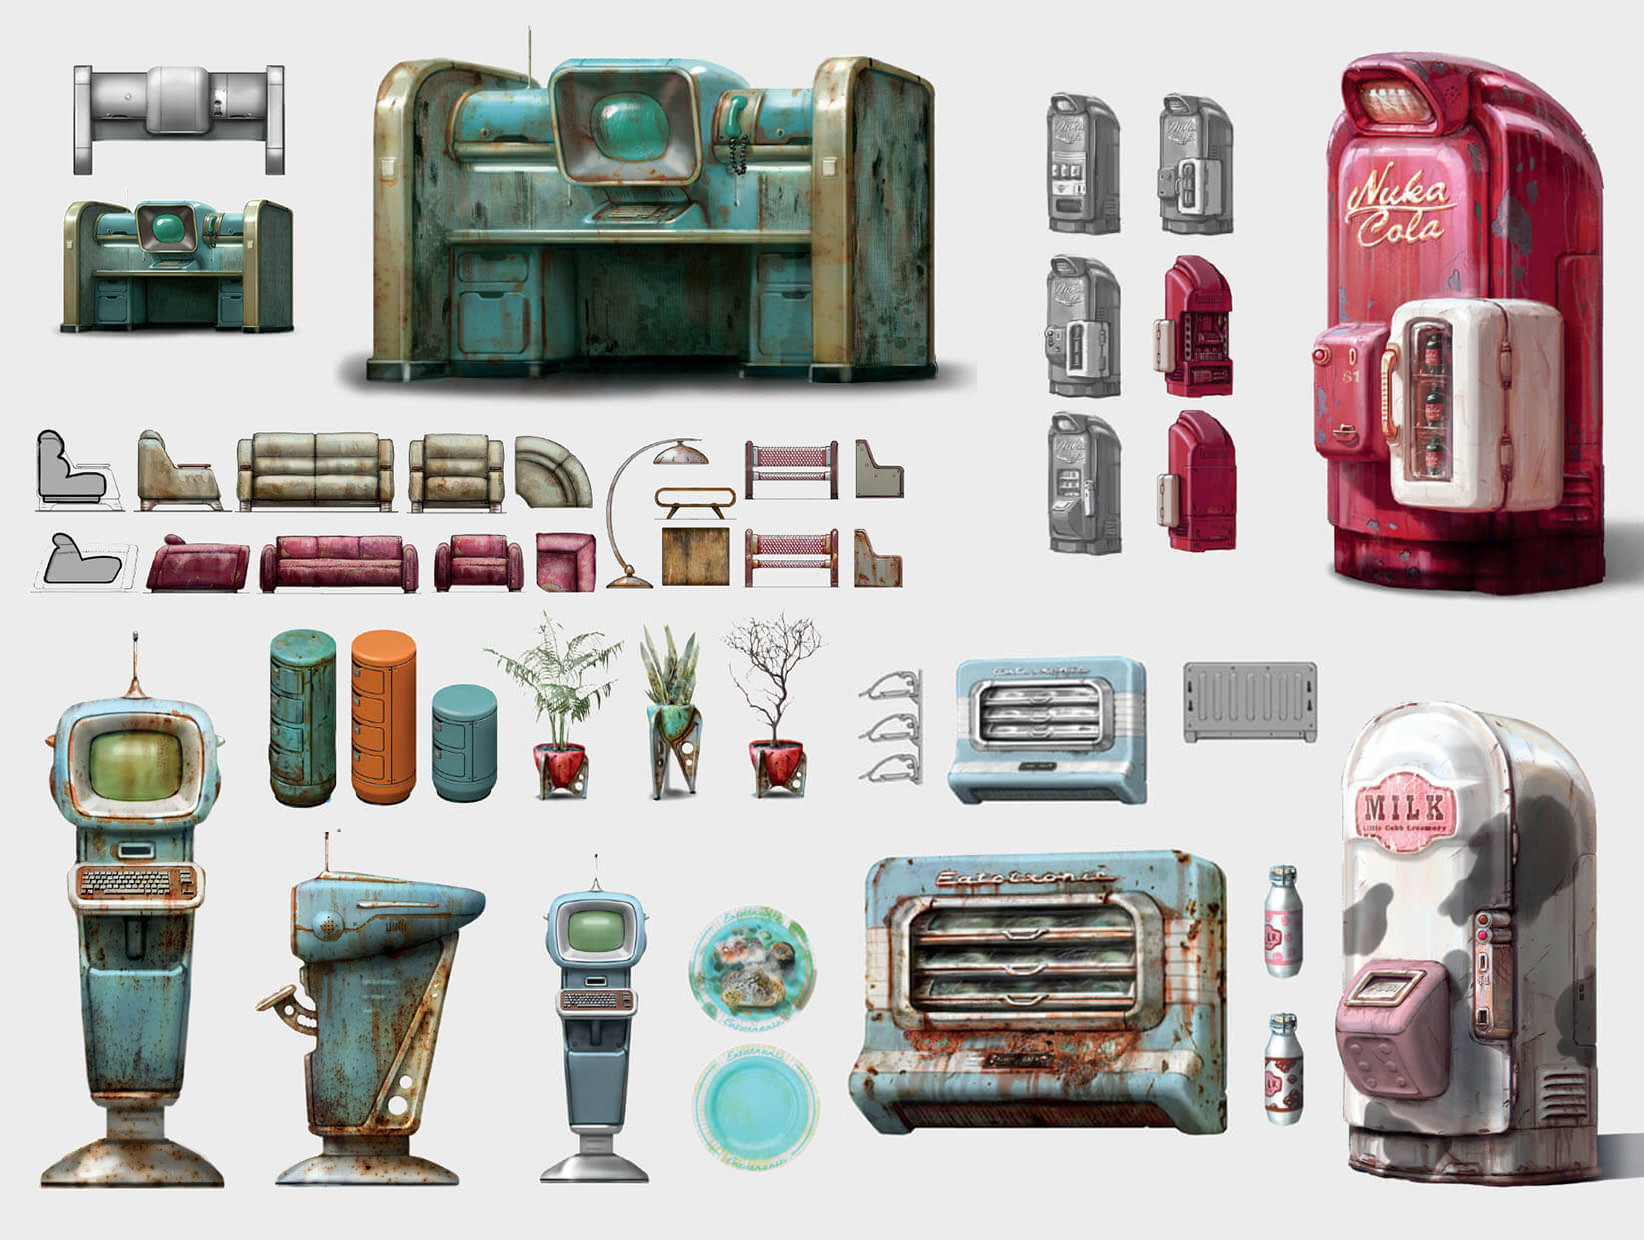 Ilya nazarov art of fallout 4 285 fridge concept art